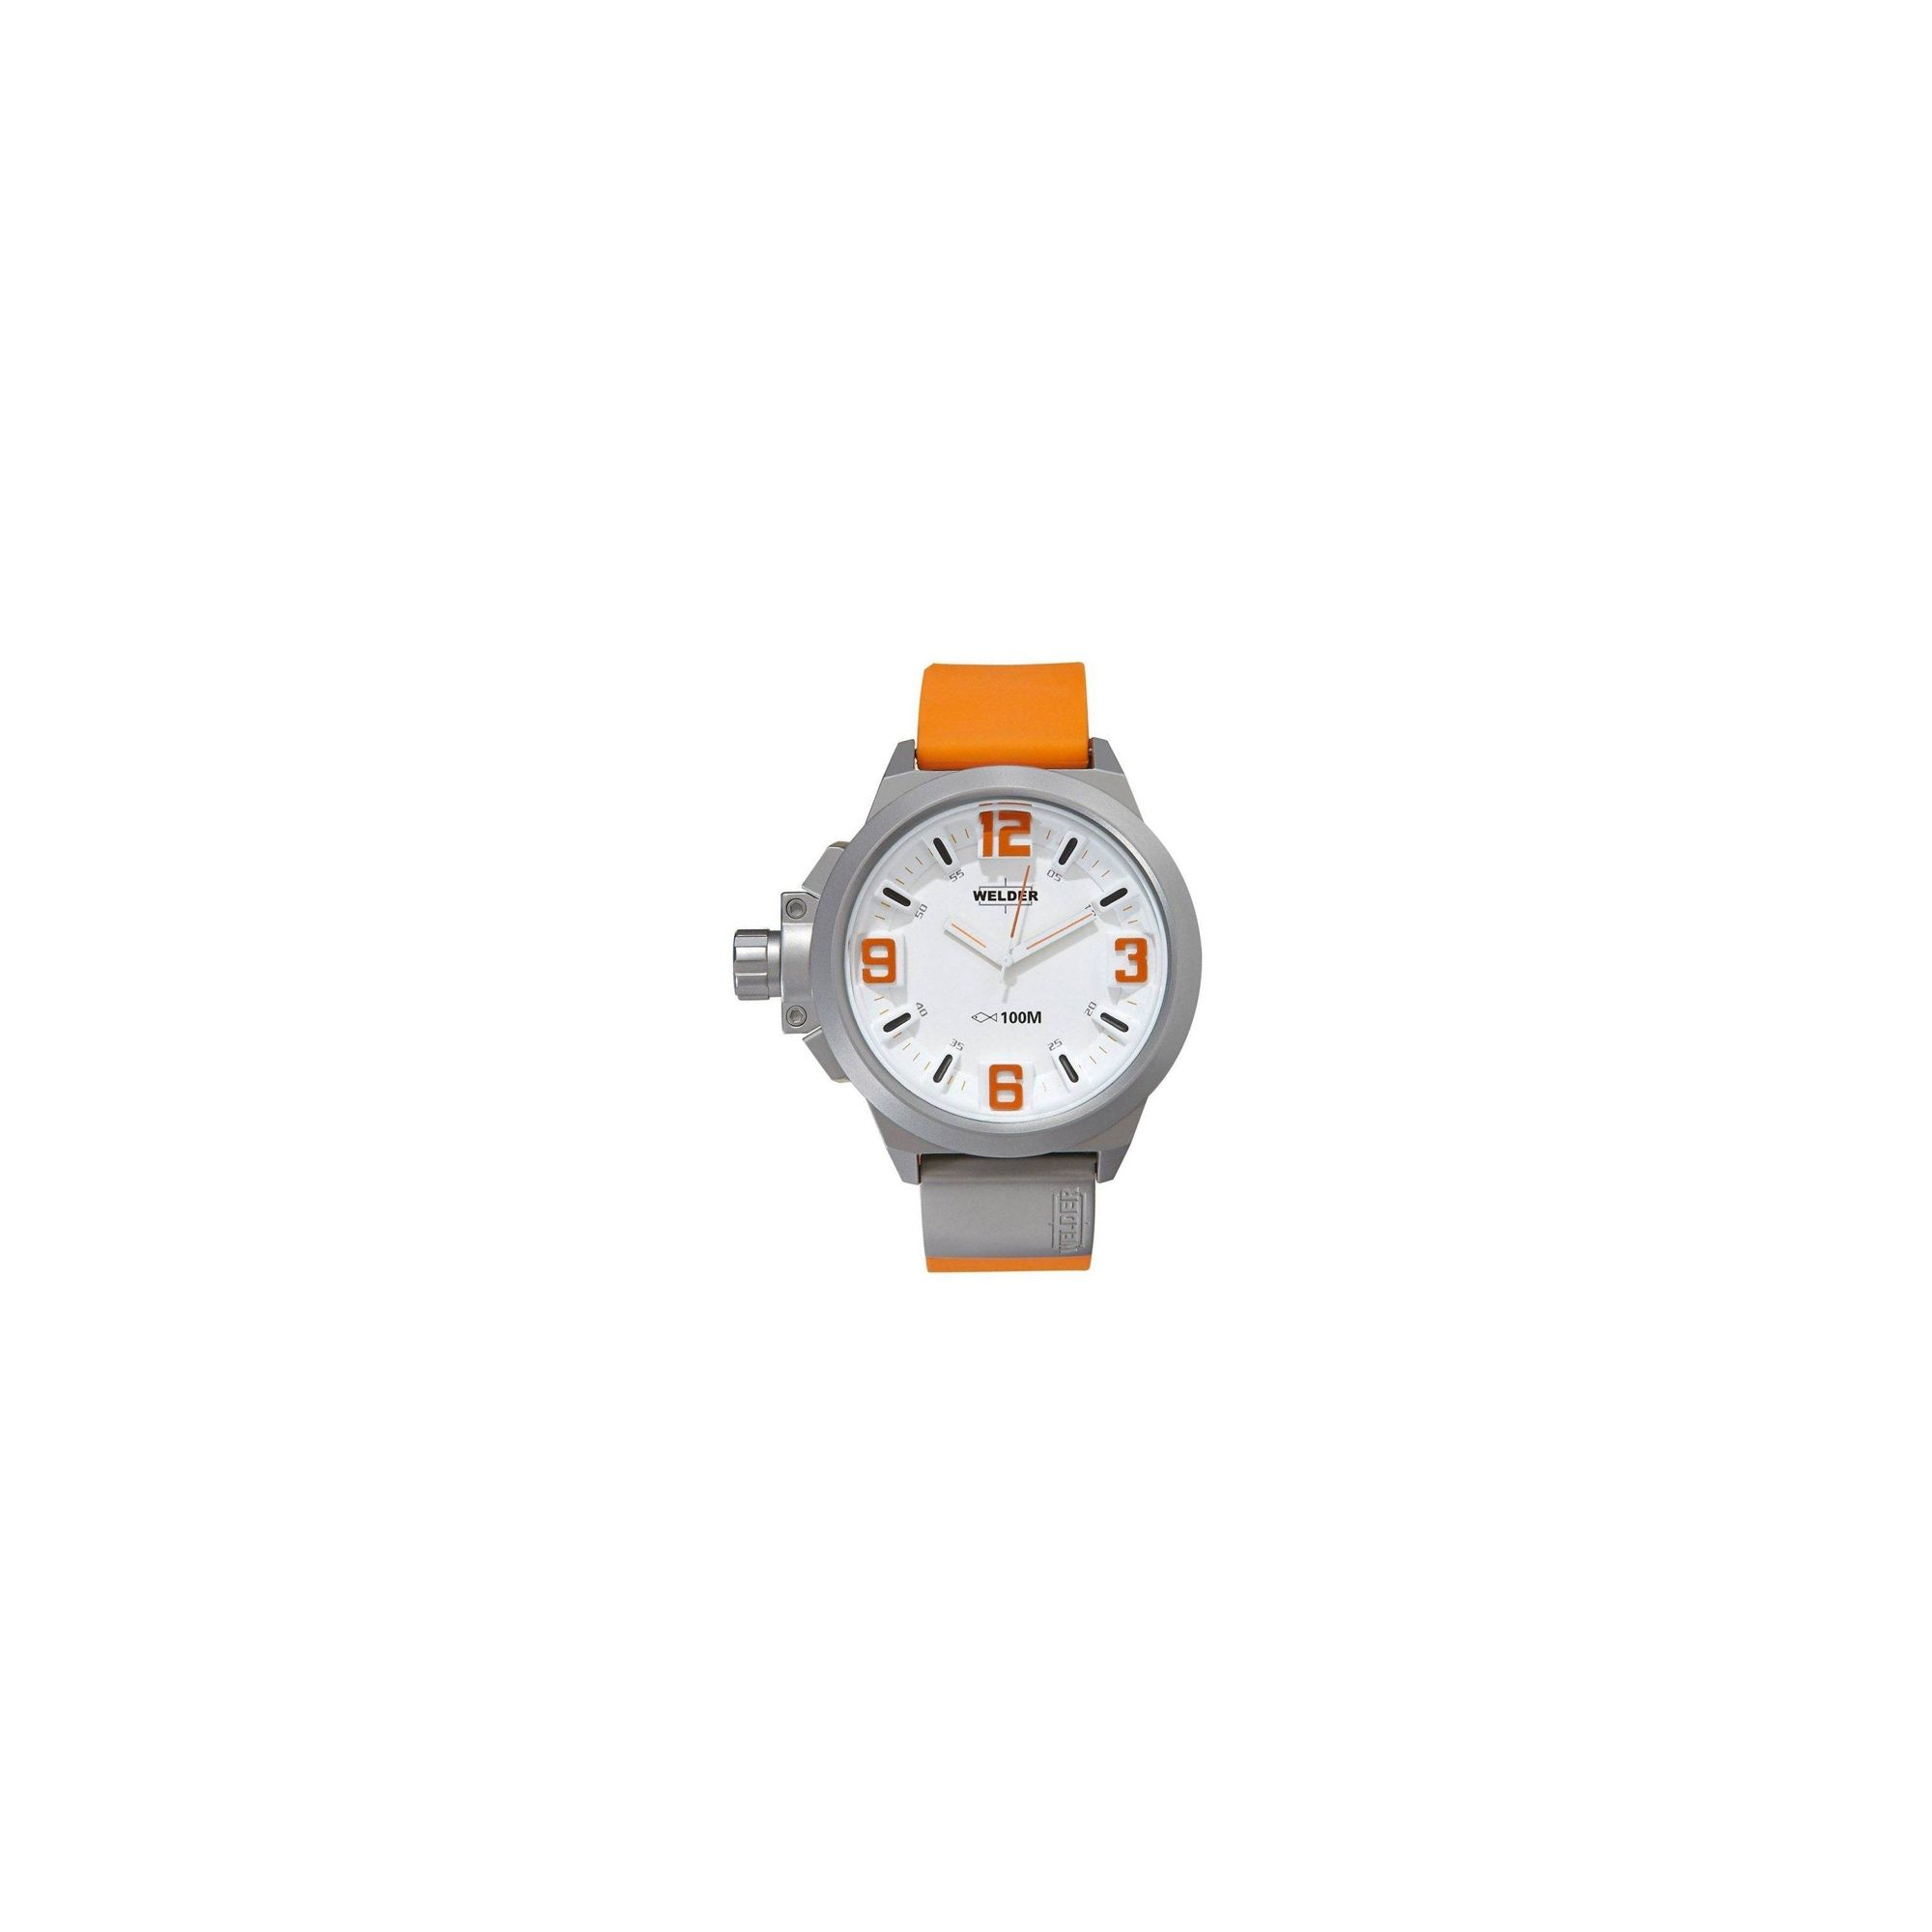 Welder Gents White Dial Orange Rubber Strap Watch K22-905 at Tesco Direct